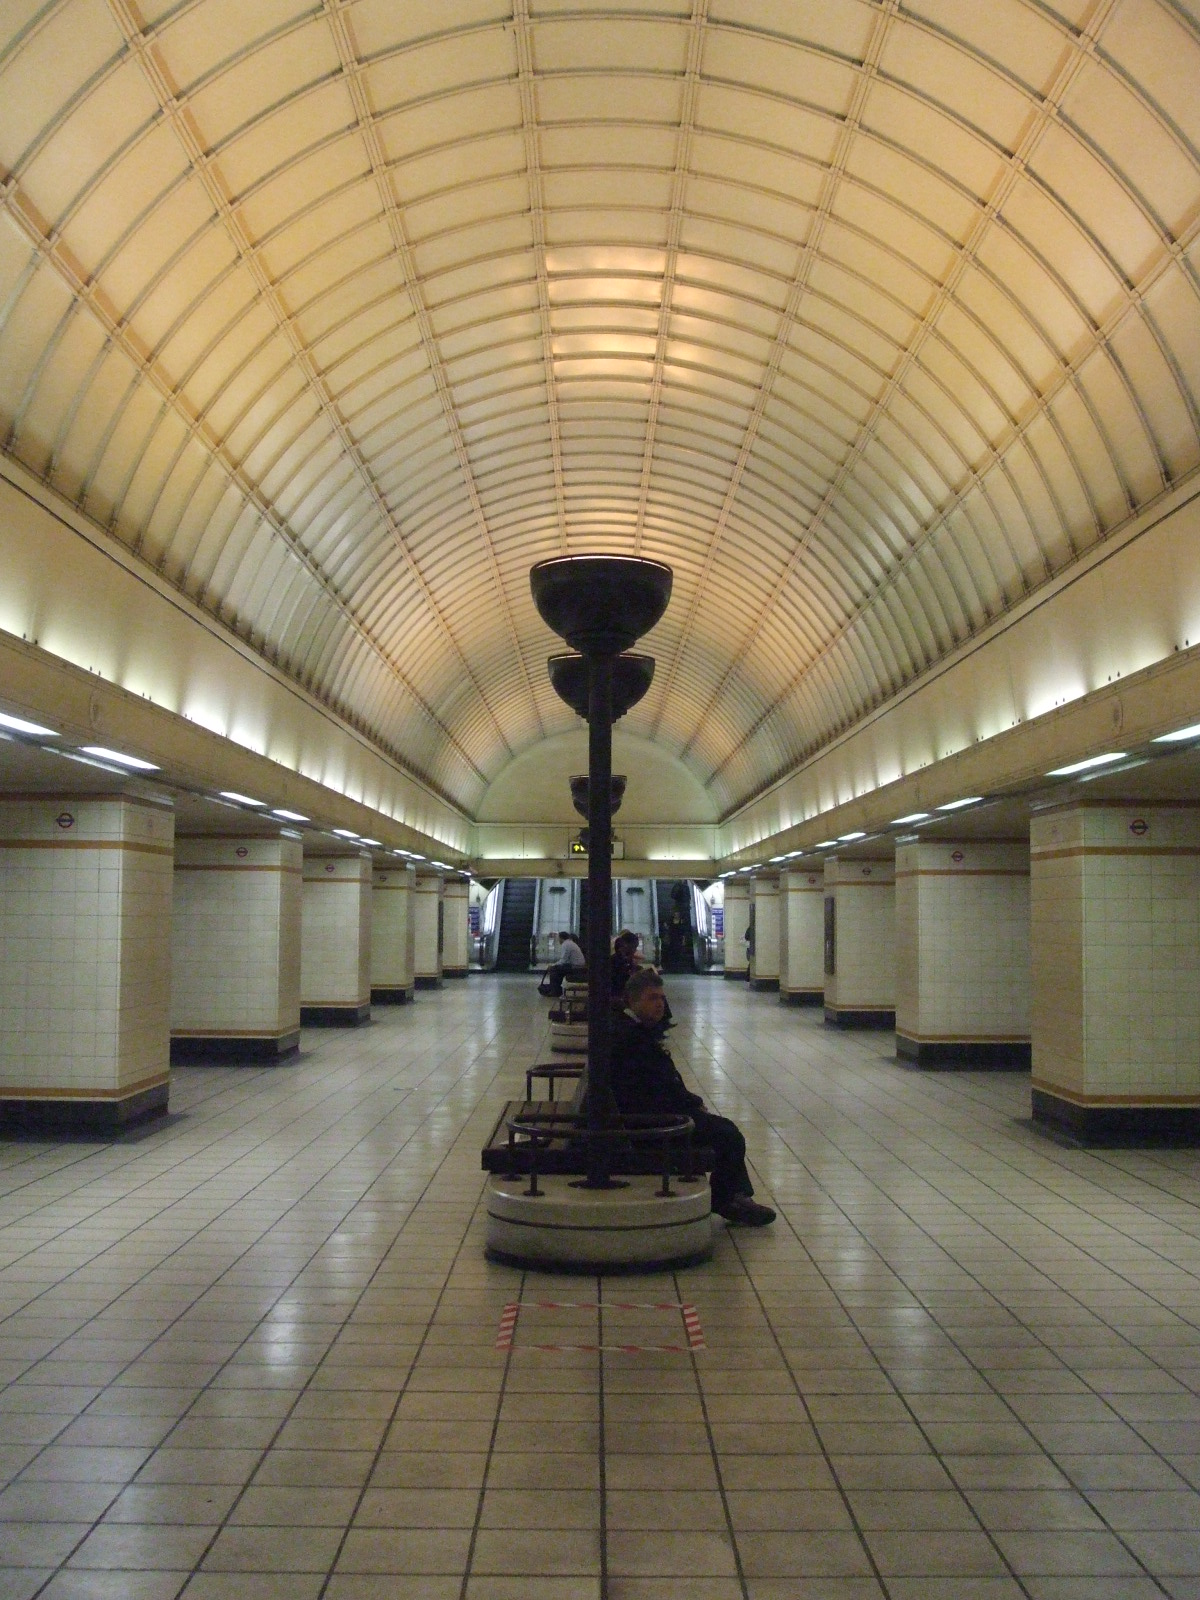 Gants Hill tube station - Wikipedia